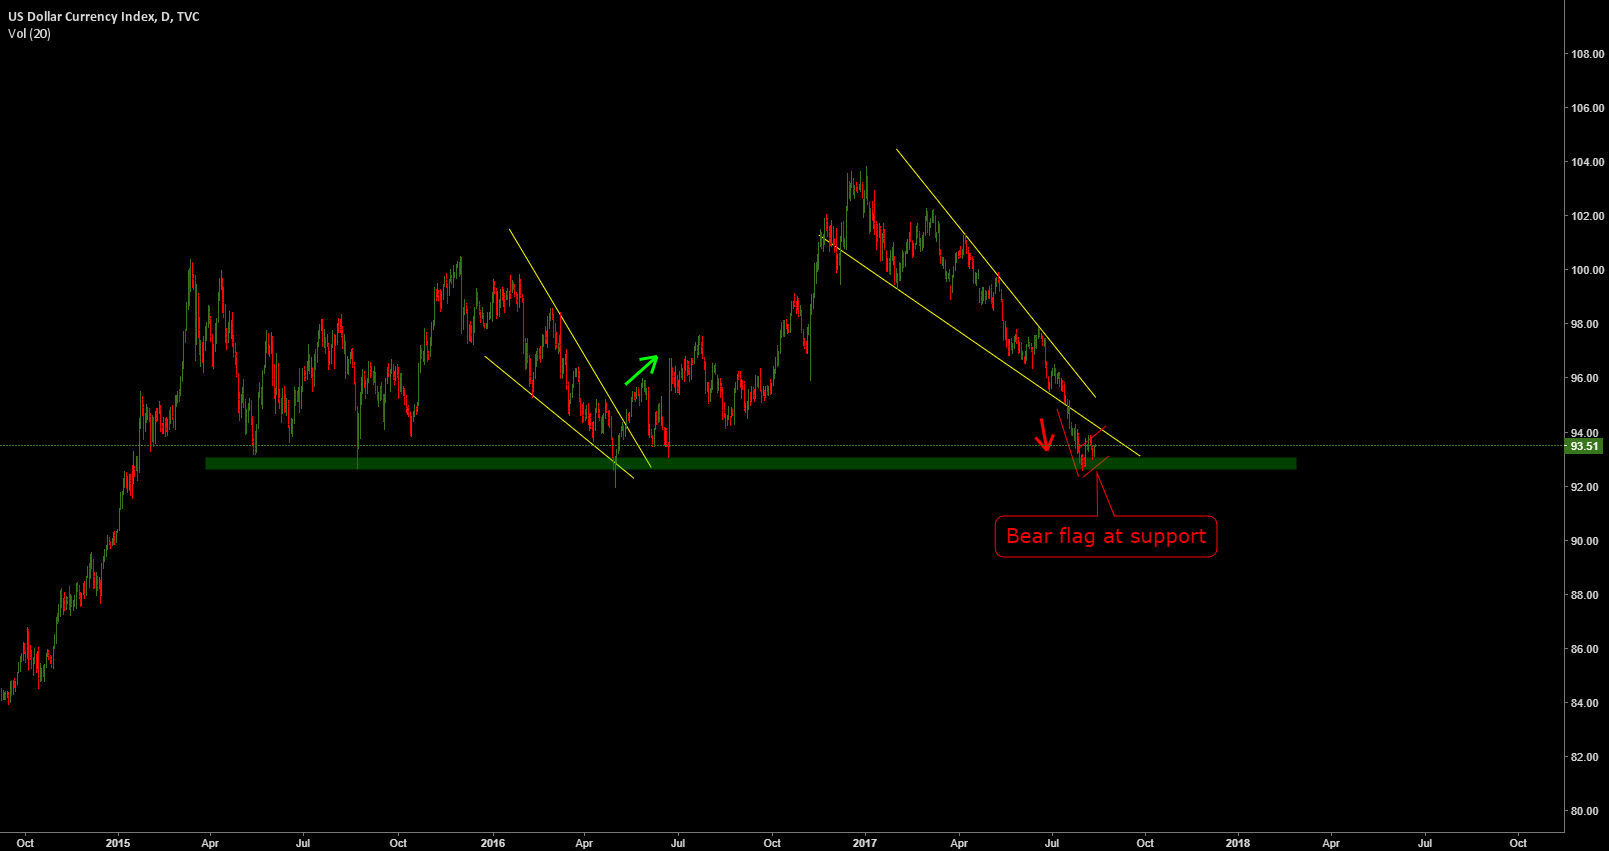 DXY: Falling Wedge and Bear Flag